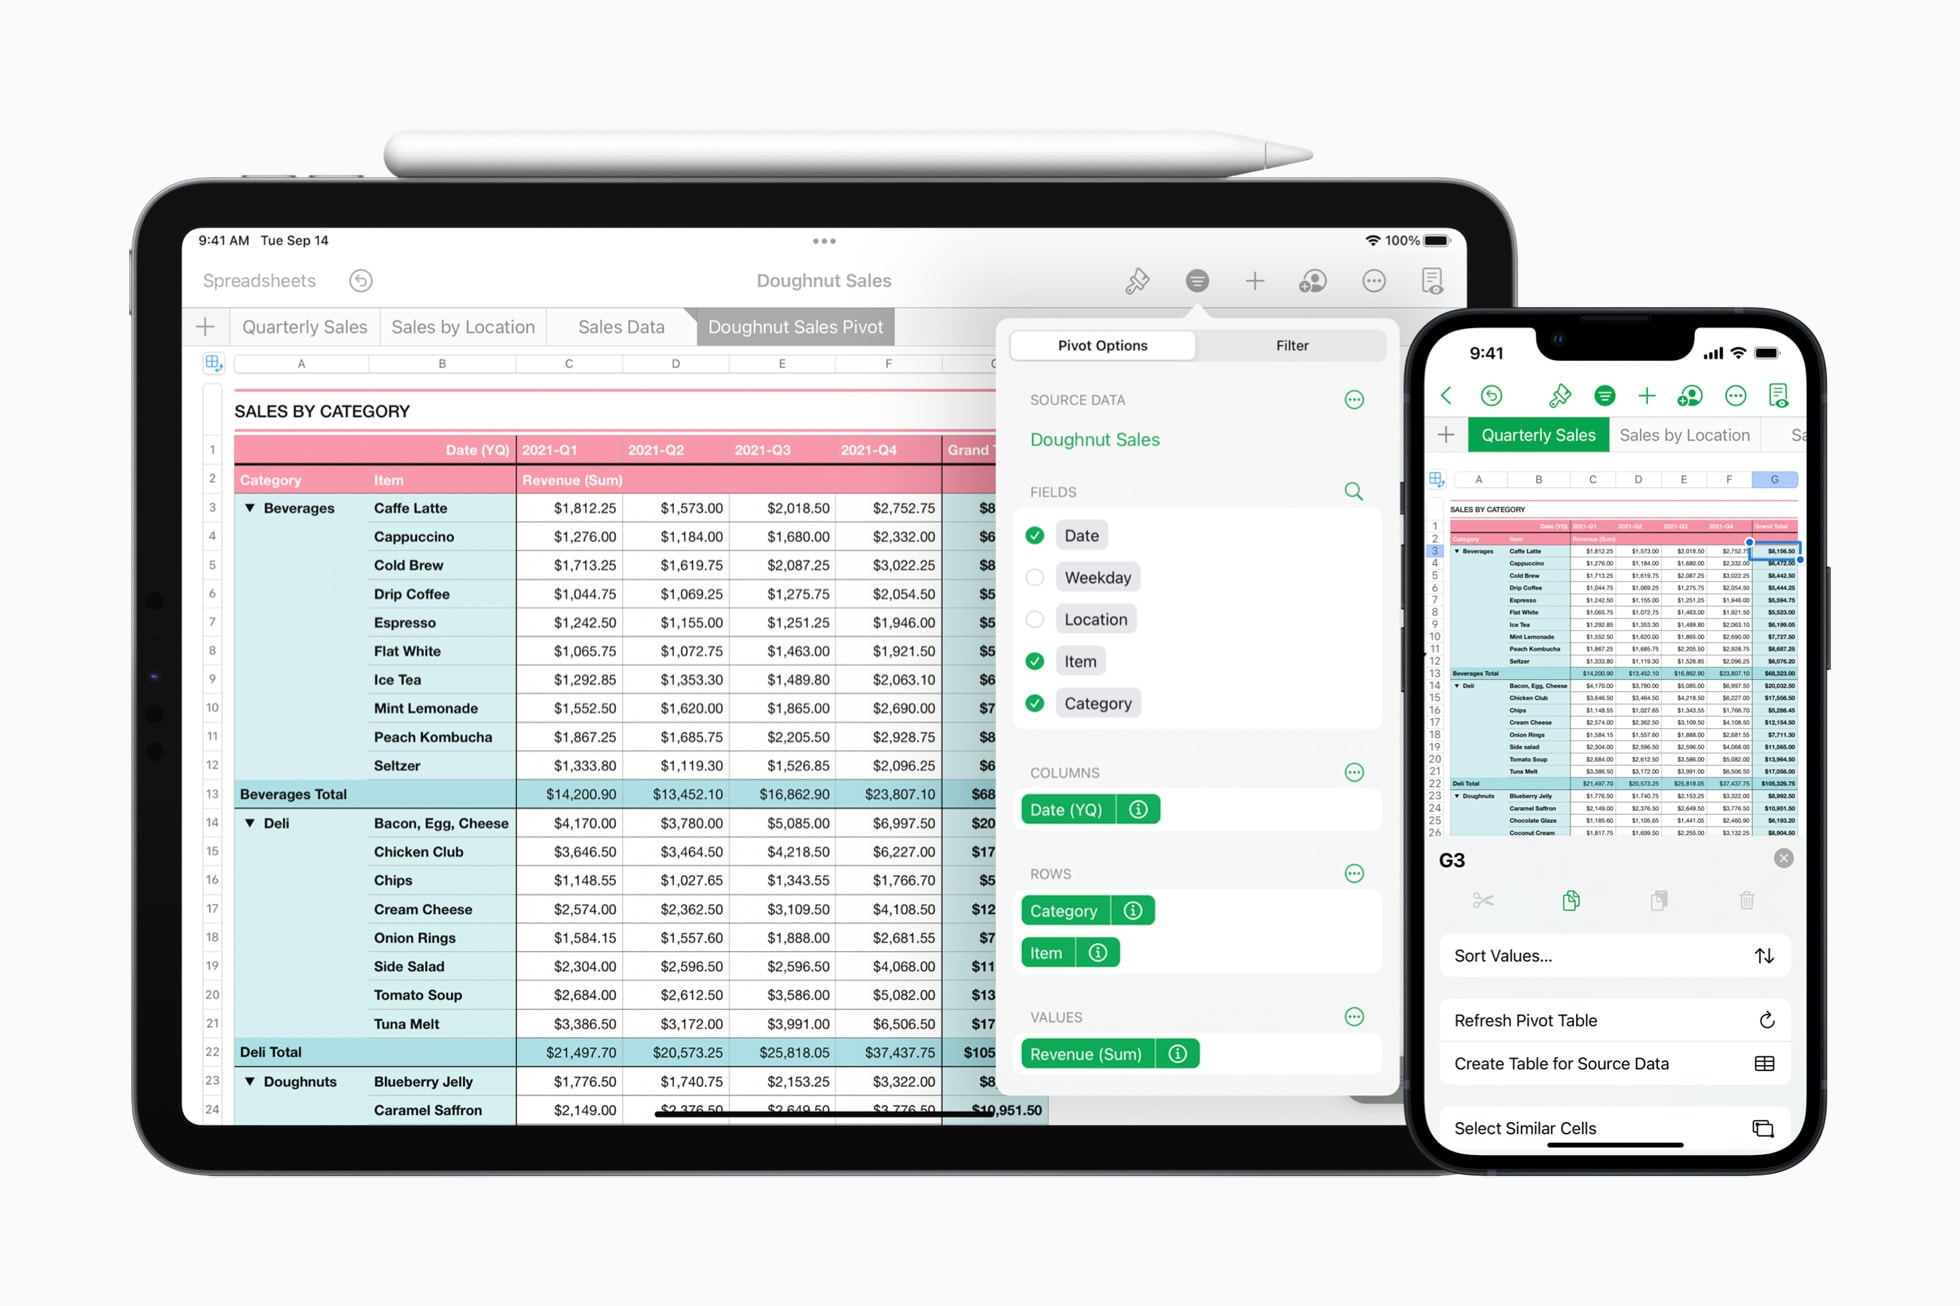 With pivot tables on iPhone, iPad, and Mac, users can quickly summarize, group, and rearrange data to identify and analyze patterns and trends.